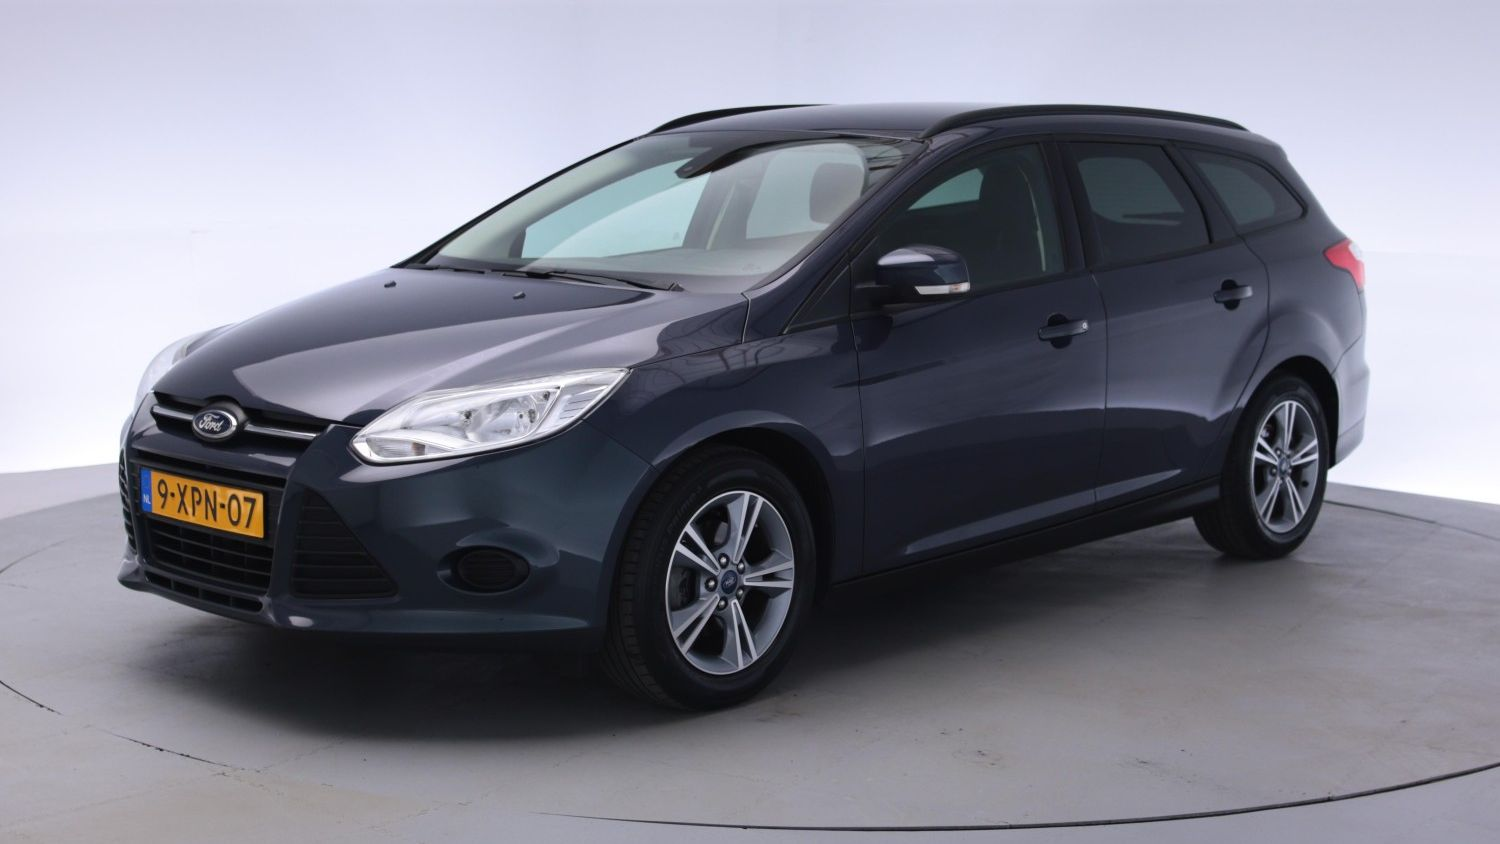 Ford Focus Station 2014 9-XPN-07 1